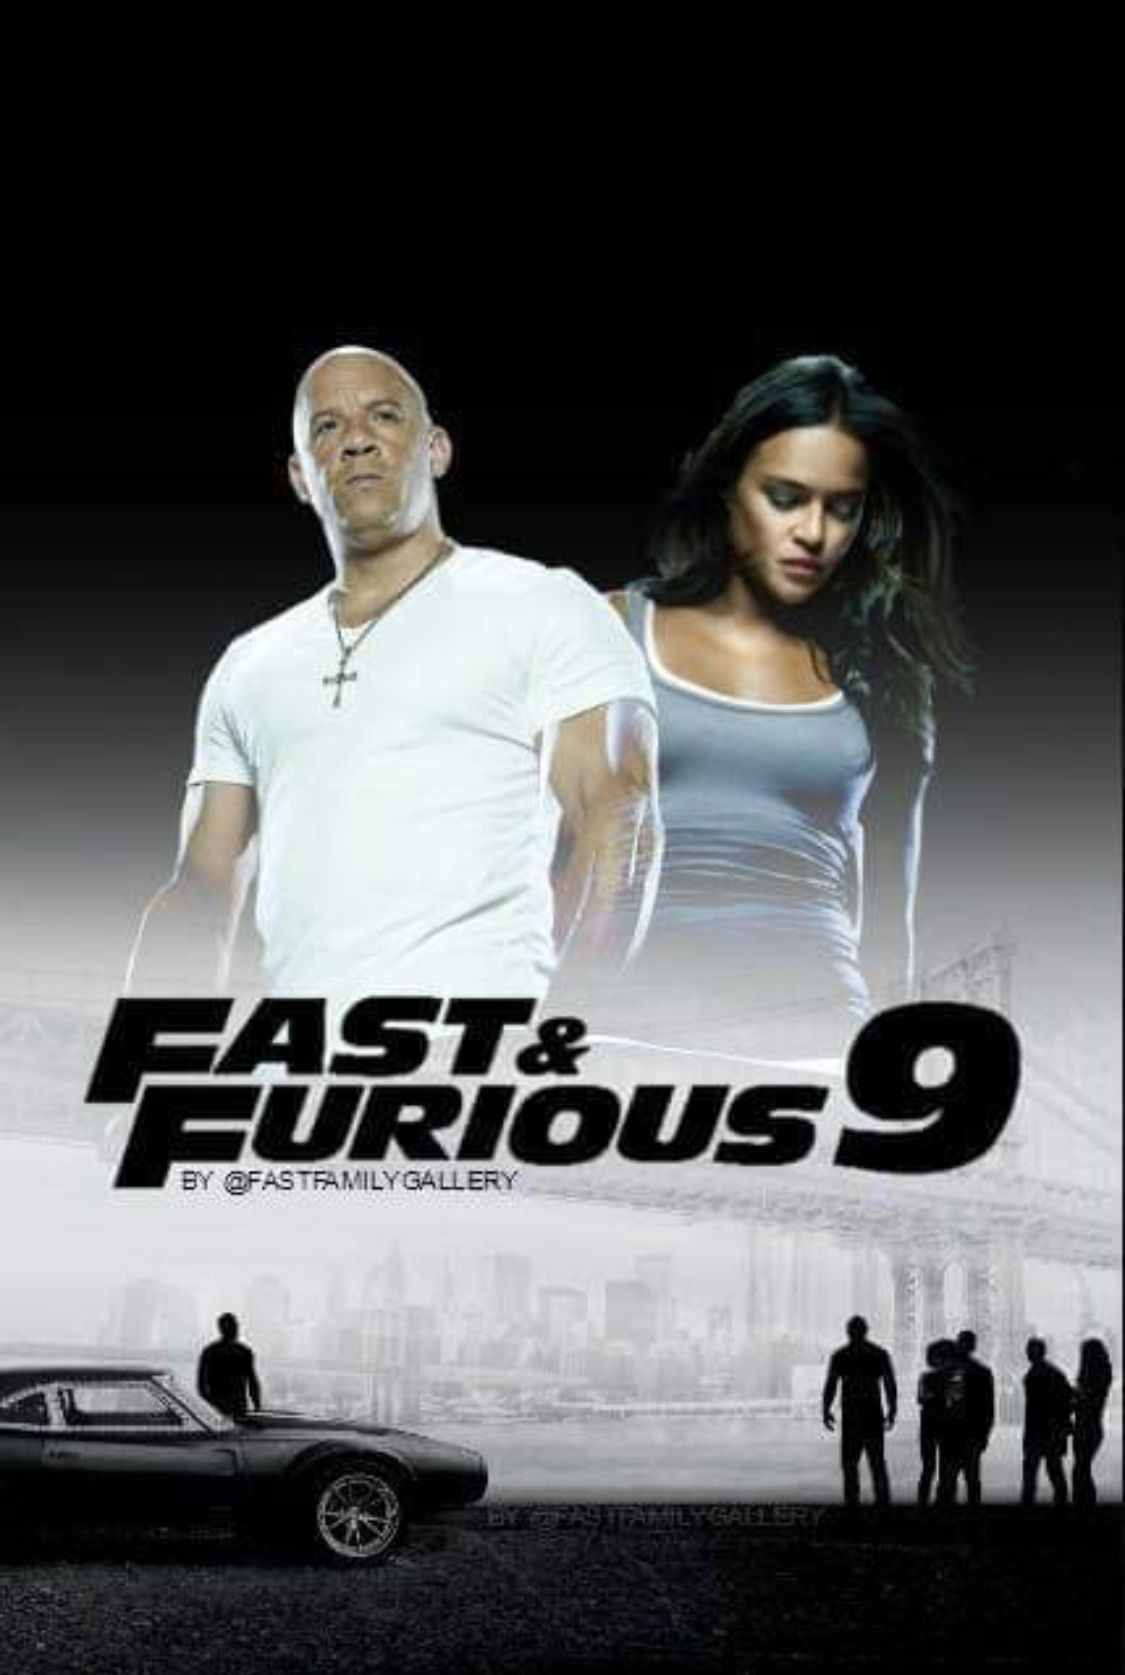 Fast furious 9 dominic toretto is leading a quiet life